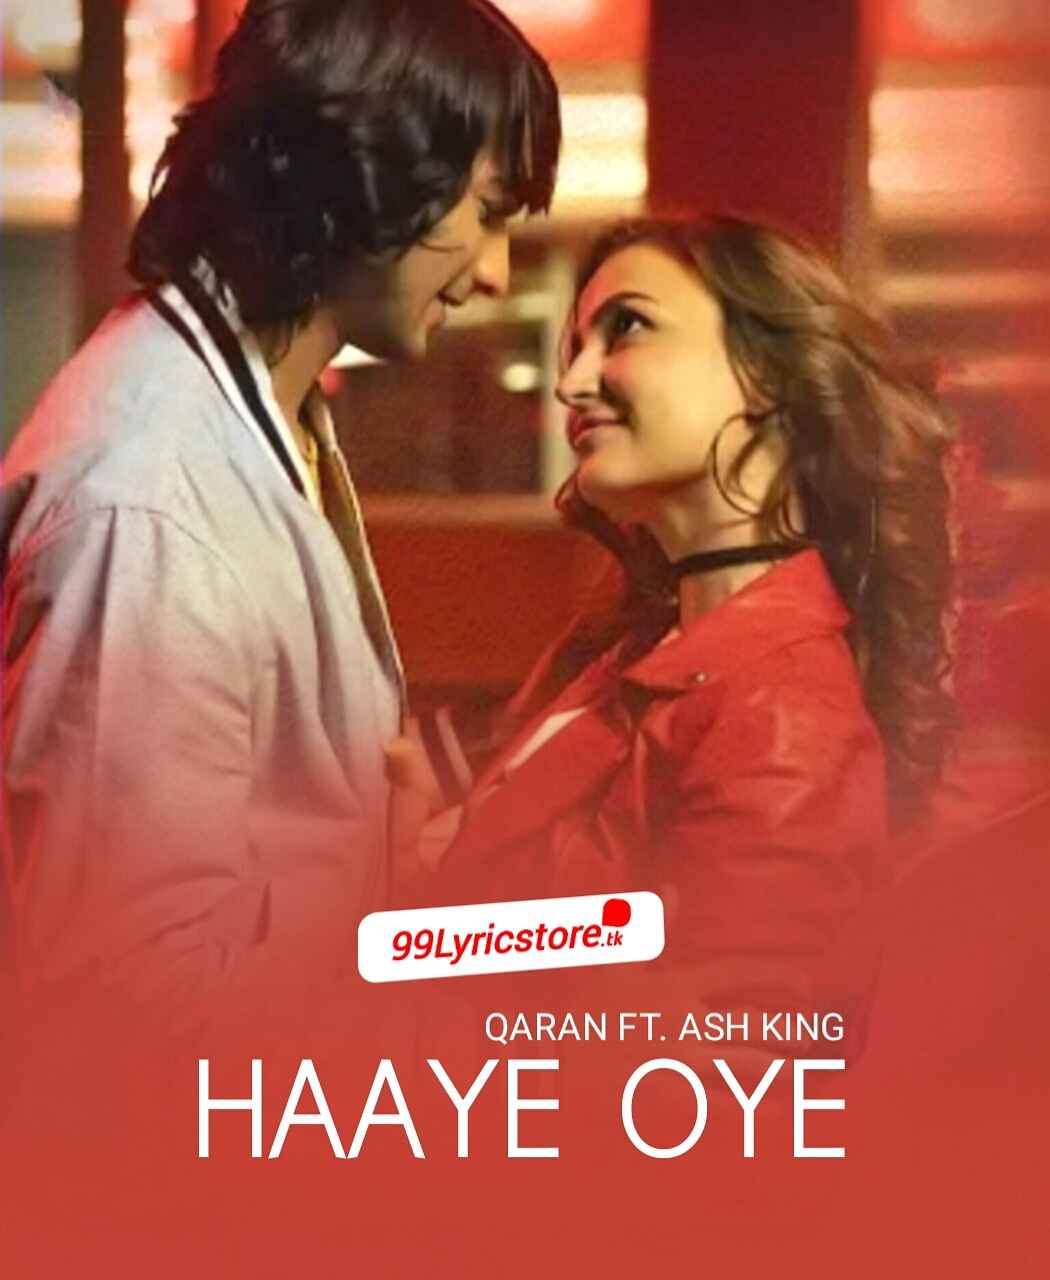 Qaran ft. Ash King song haaye Oye Elle Avram and Shantanu Maheswari